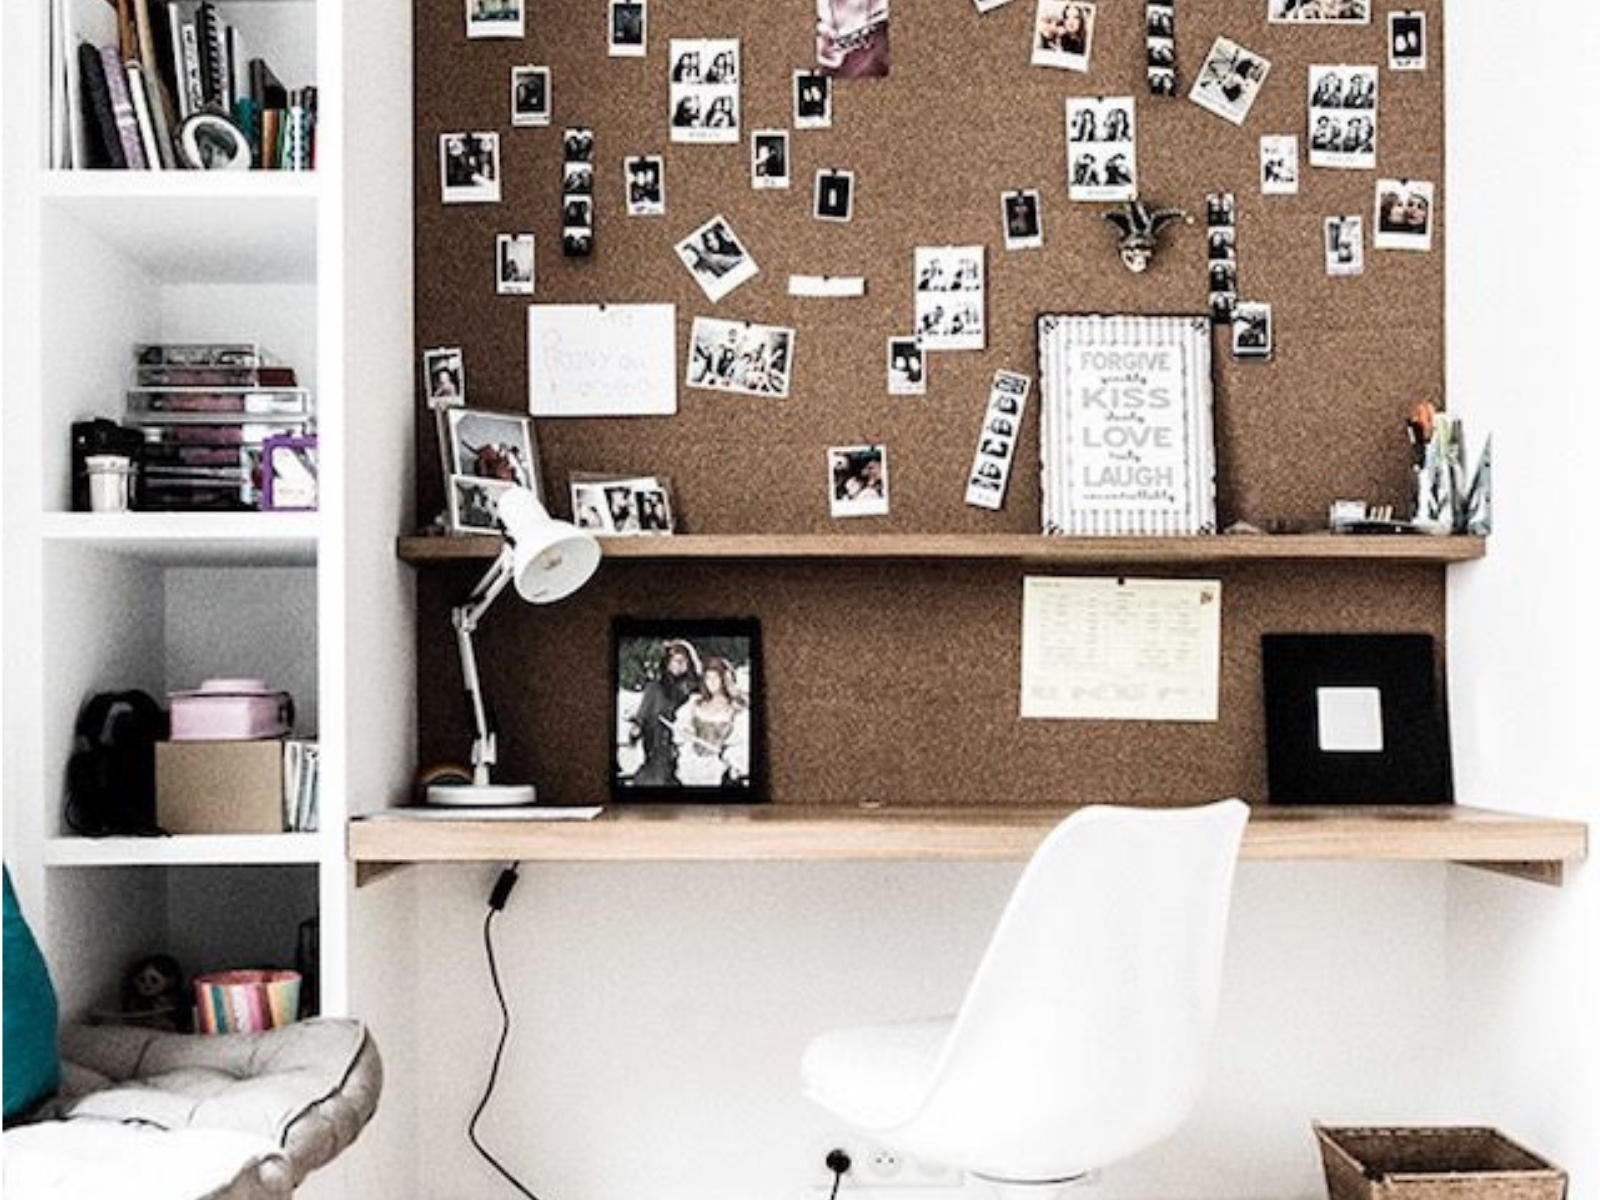 10 Cute Diy Cork Board Ideas For Your College Dorm Room Society19